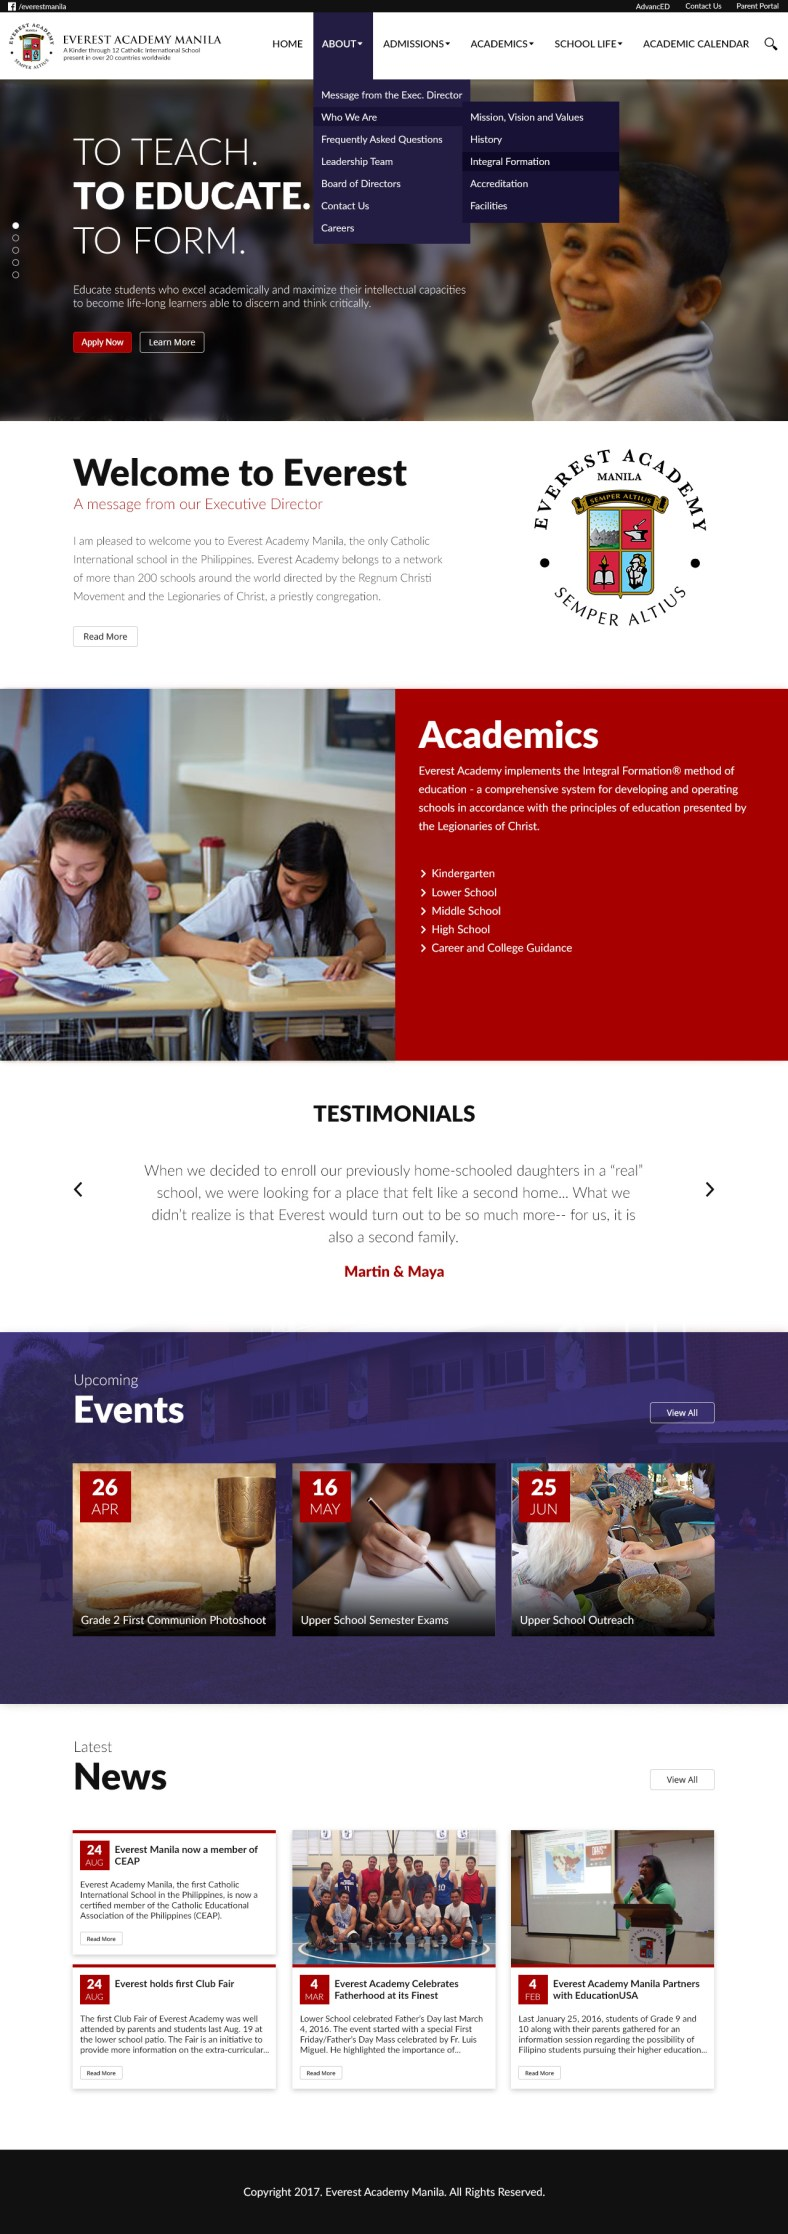 Eversest Academy Manila - Home Page